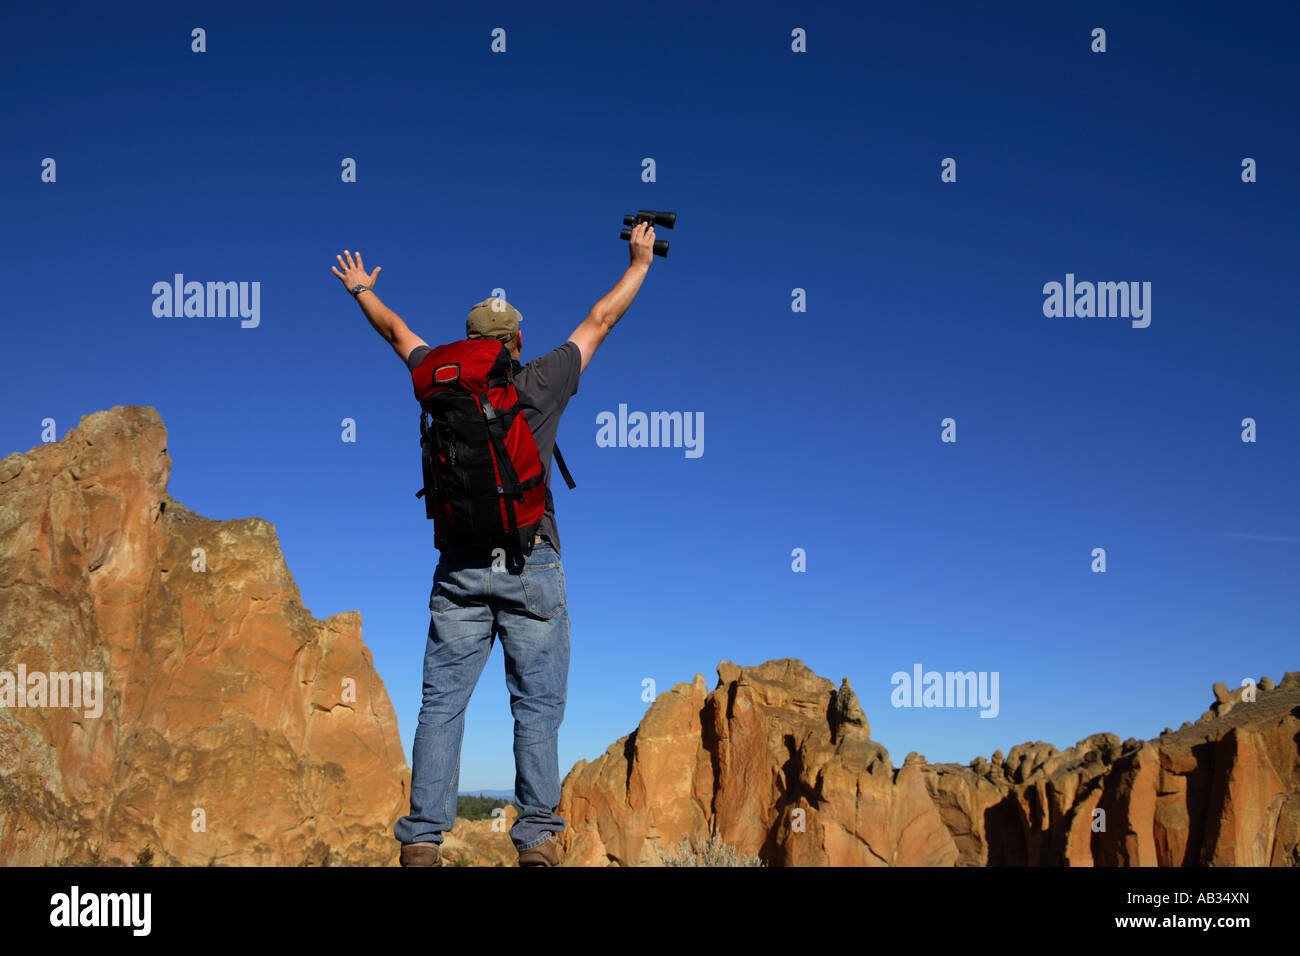 Man wearing backpack stands with hands in air over rocky scenery - Stock Image